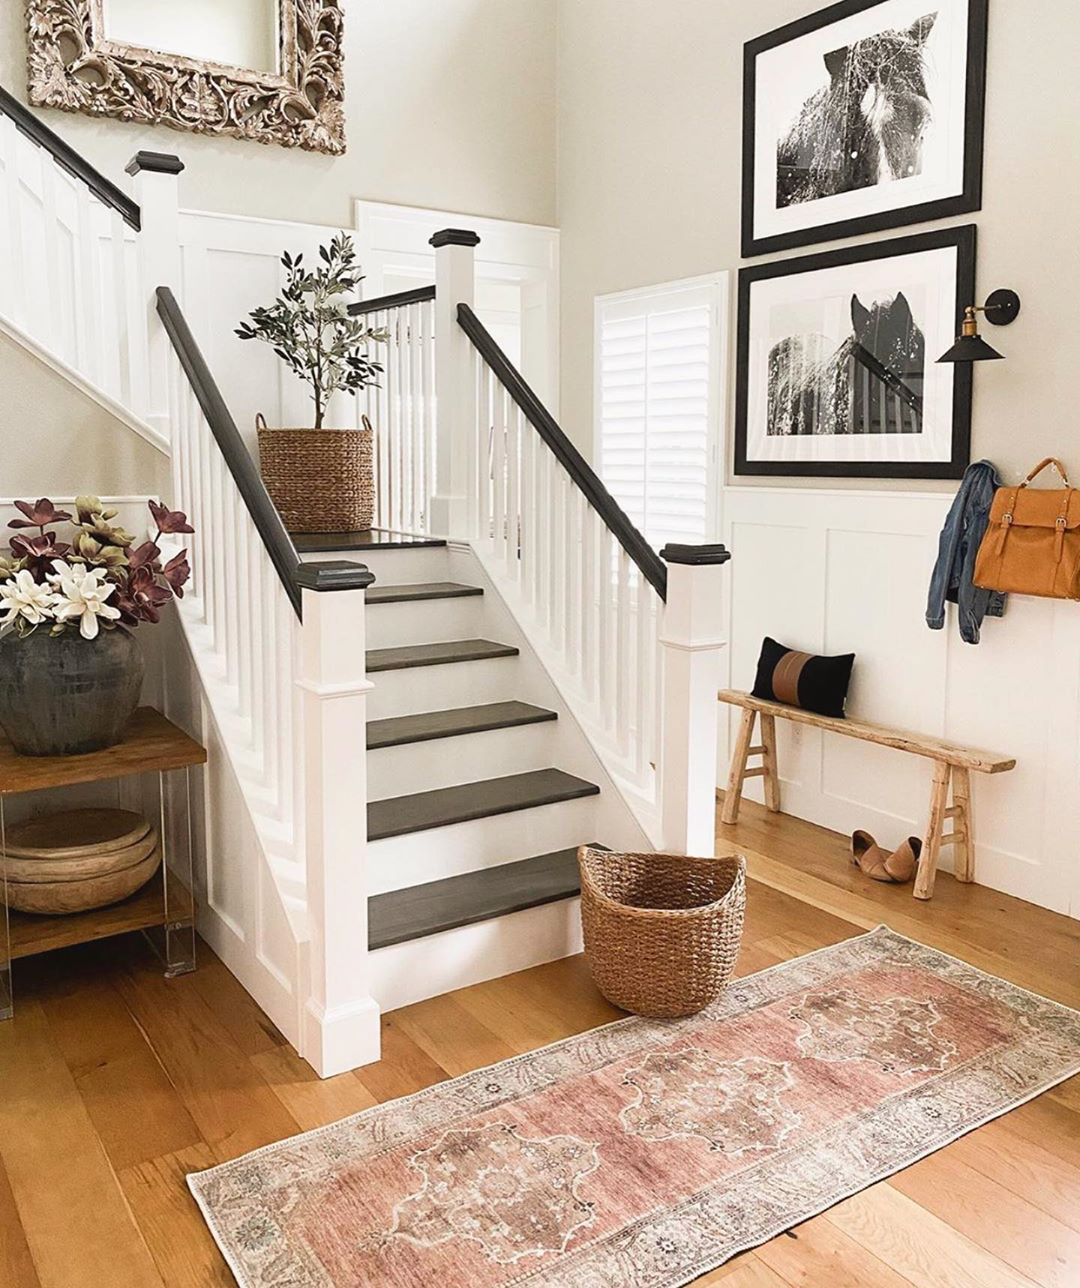 New Decor Trends for Home Designs and Ideas 2021 (76)